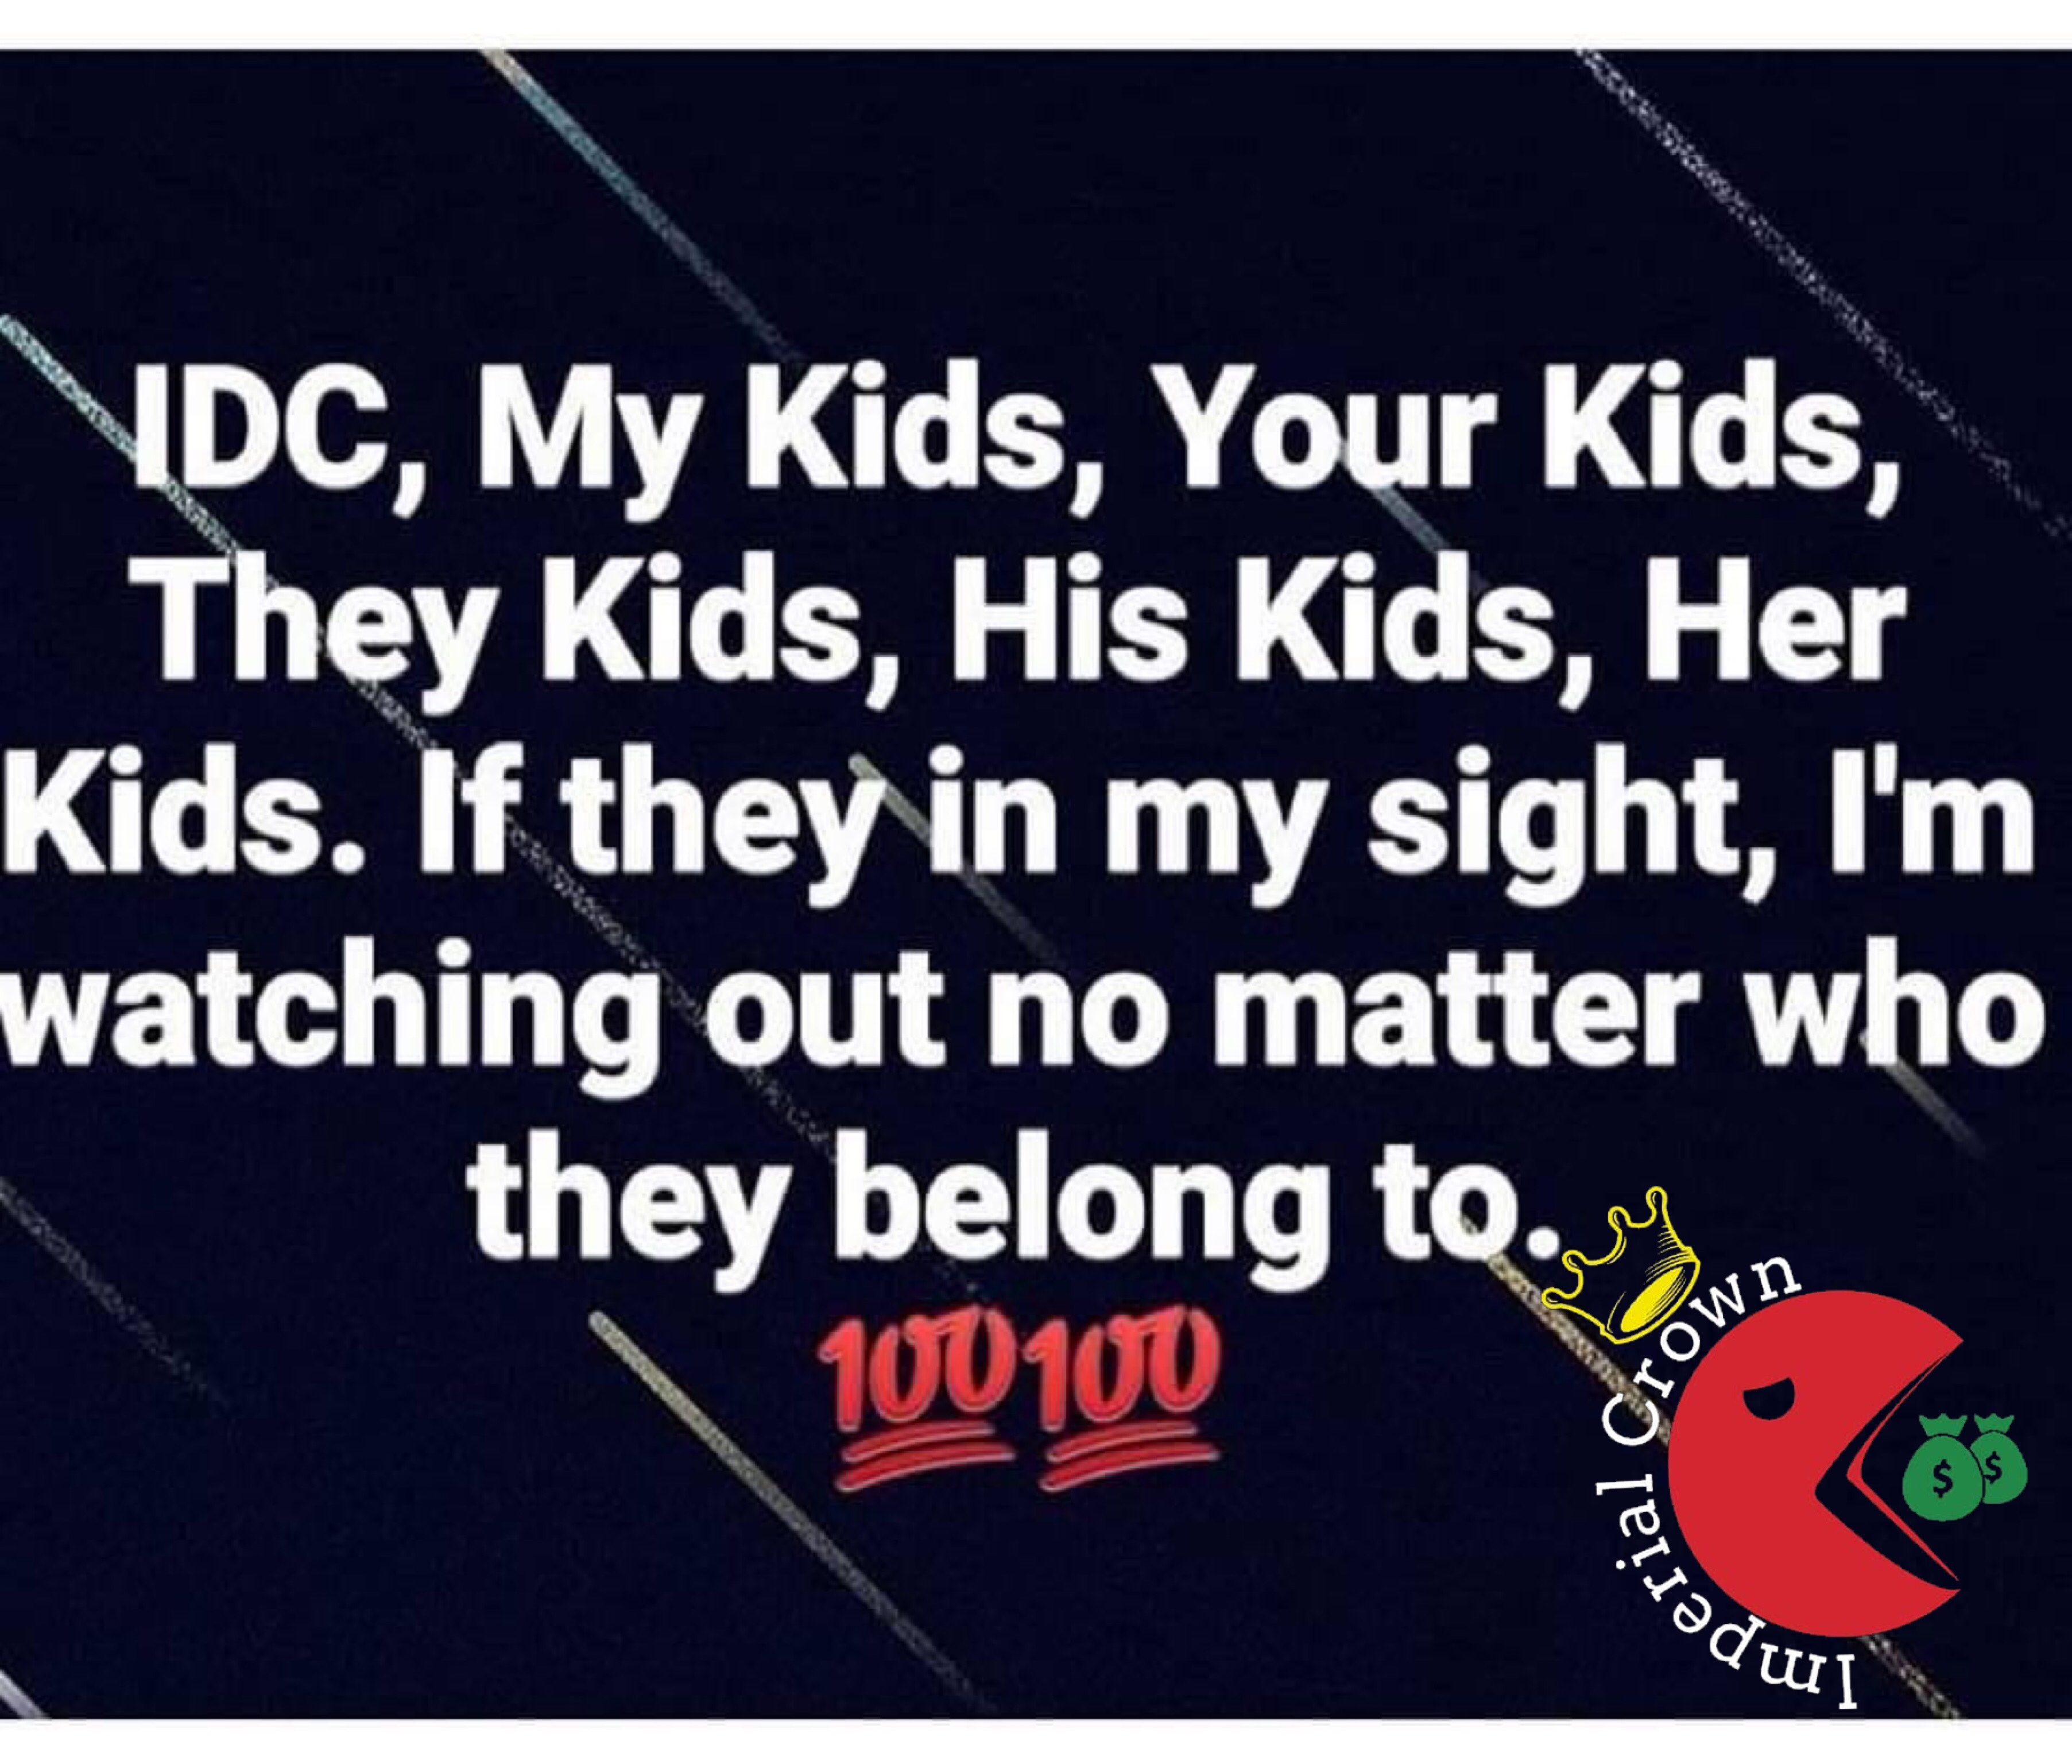 Idc, my kids, your kids, they kids, his kids, her kids. If they in my sight, I'm watching out no matter who they belong to